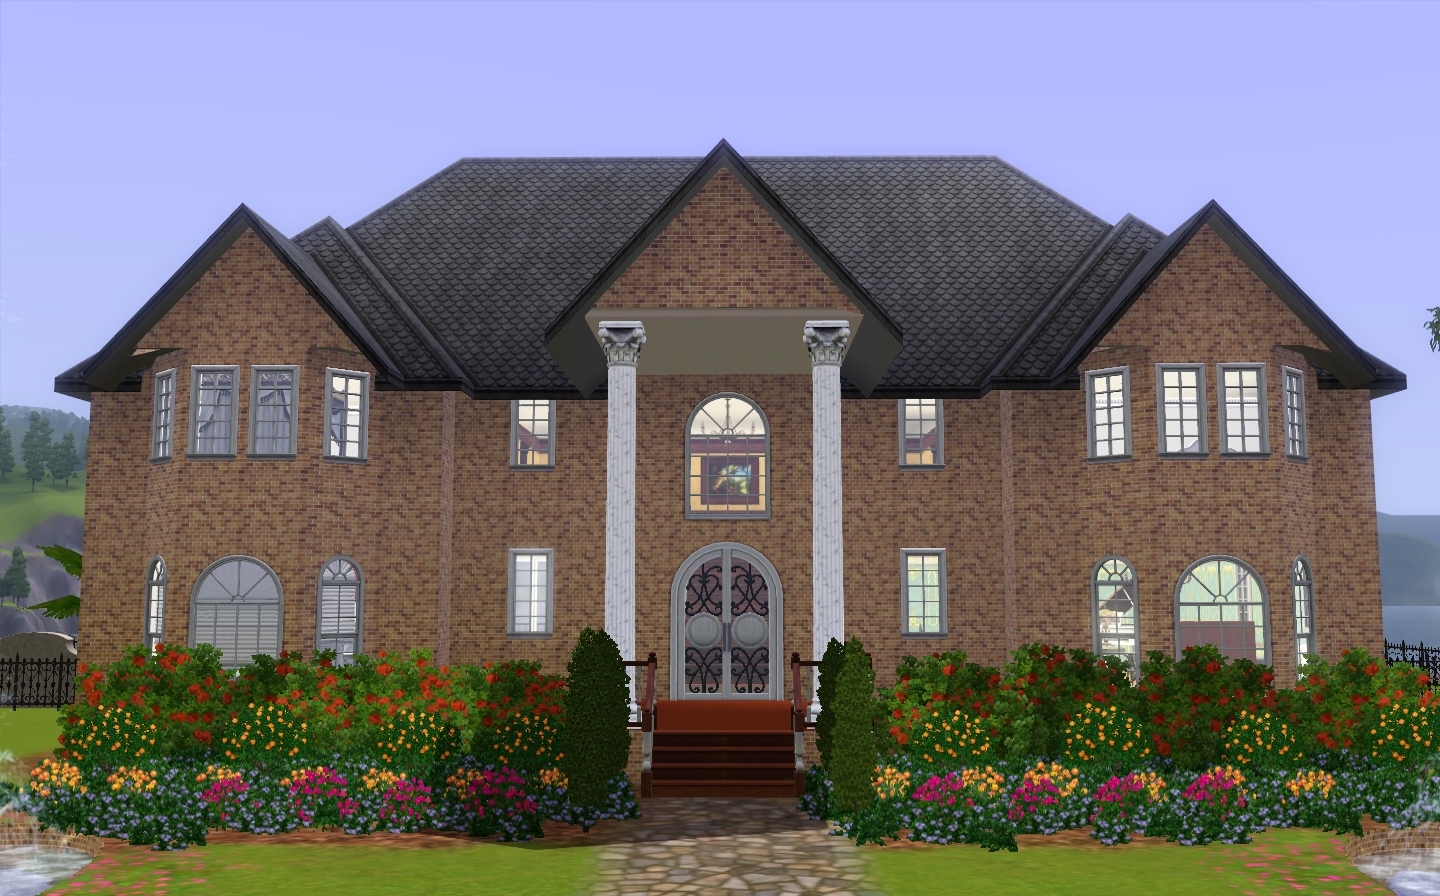 20 perfect images the sims 3 houses house plans 41361 for Best house designs for the sims 3